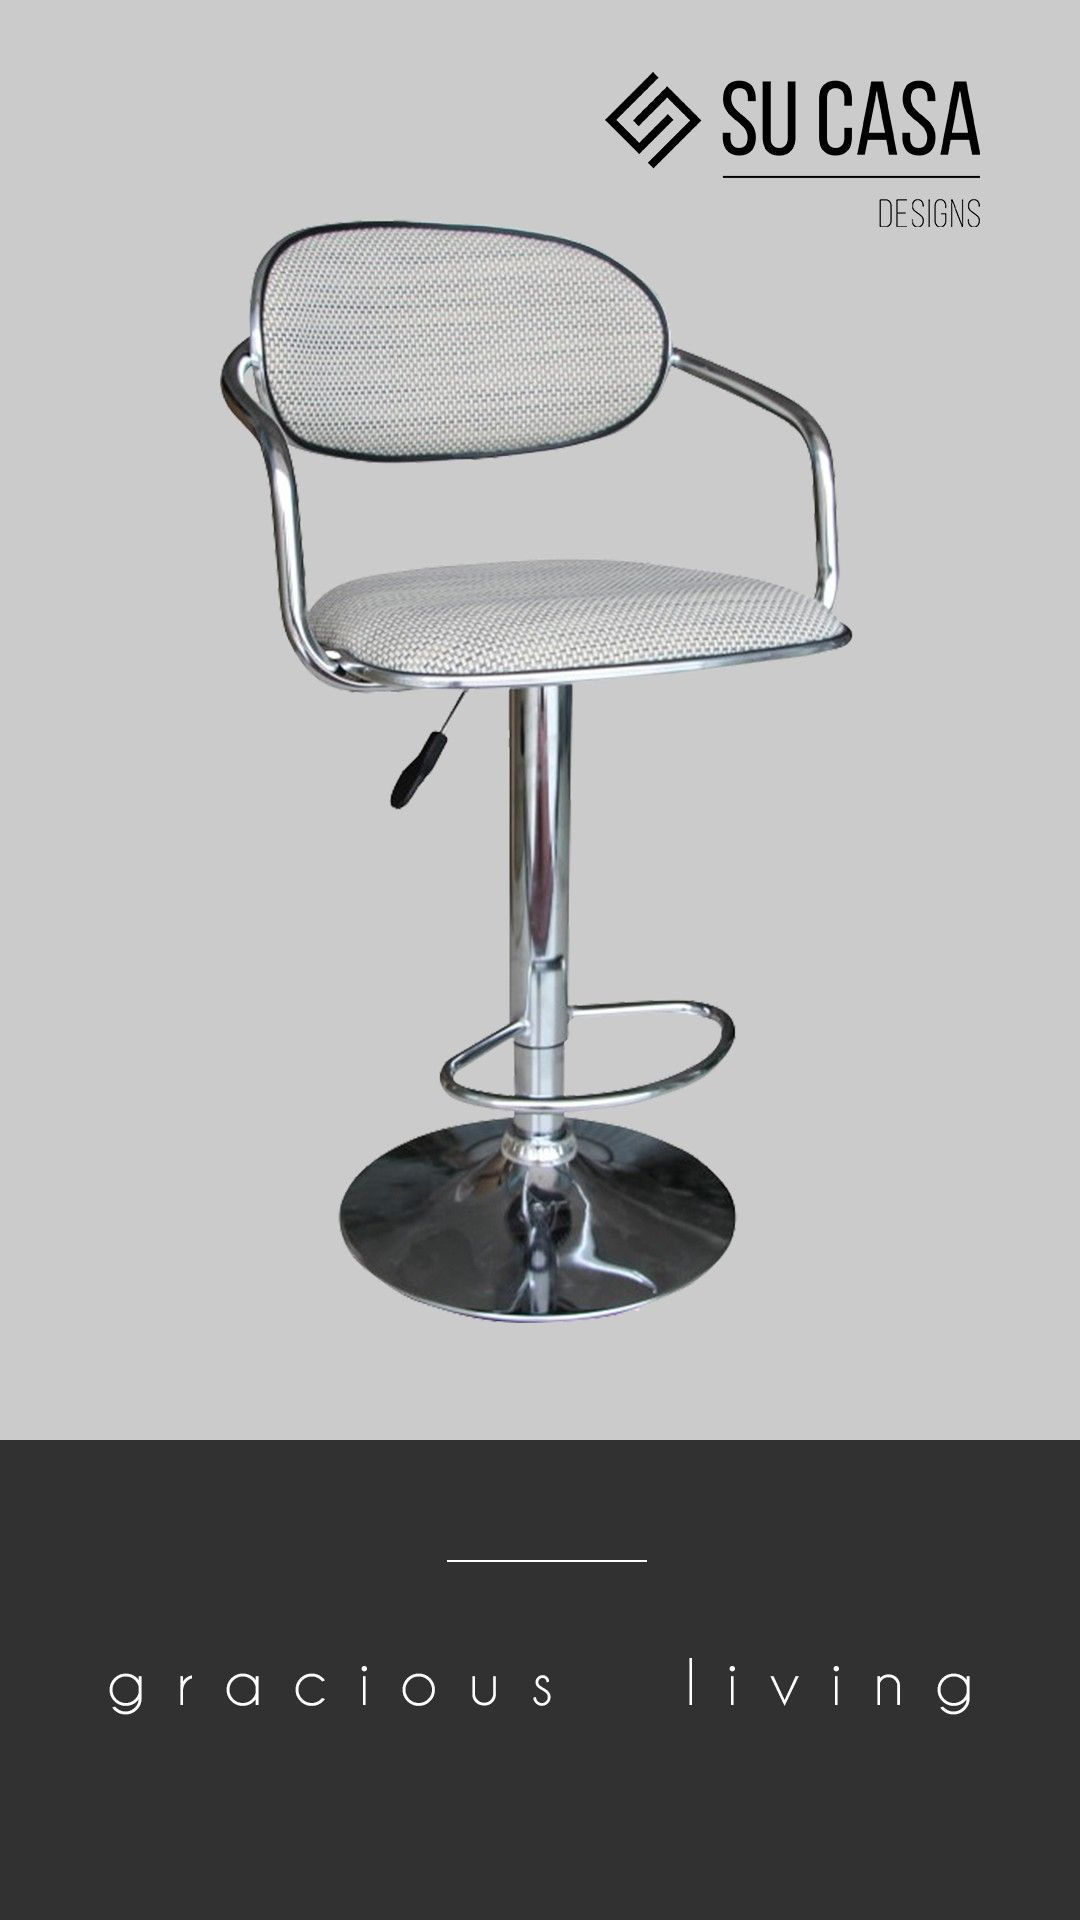 Live Graciously With This Barstool For R695 Only Now Available At